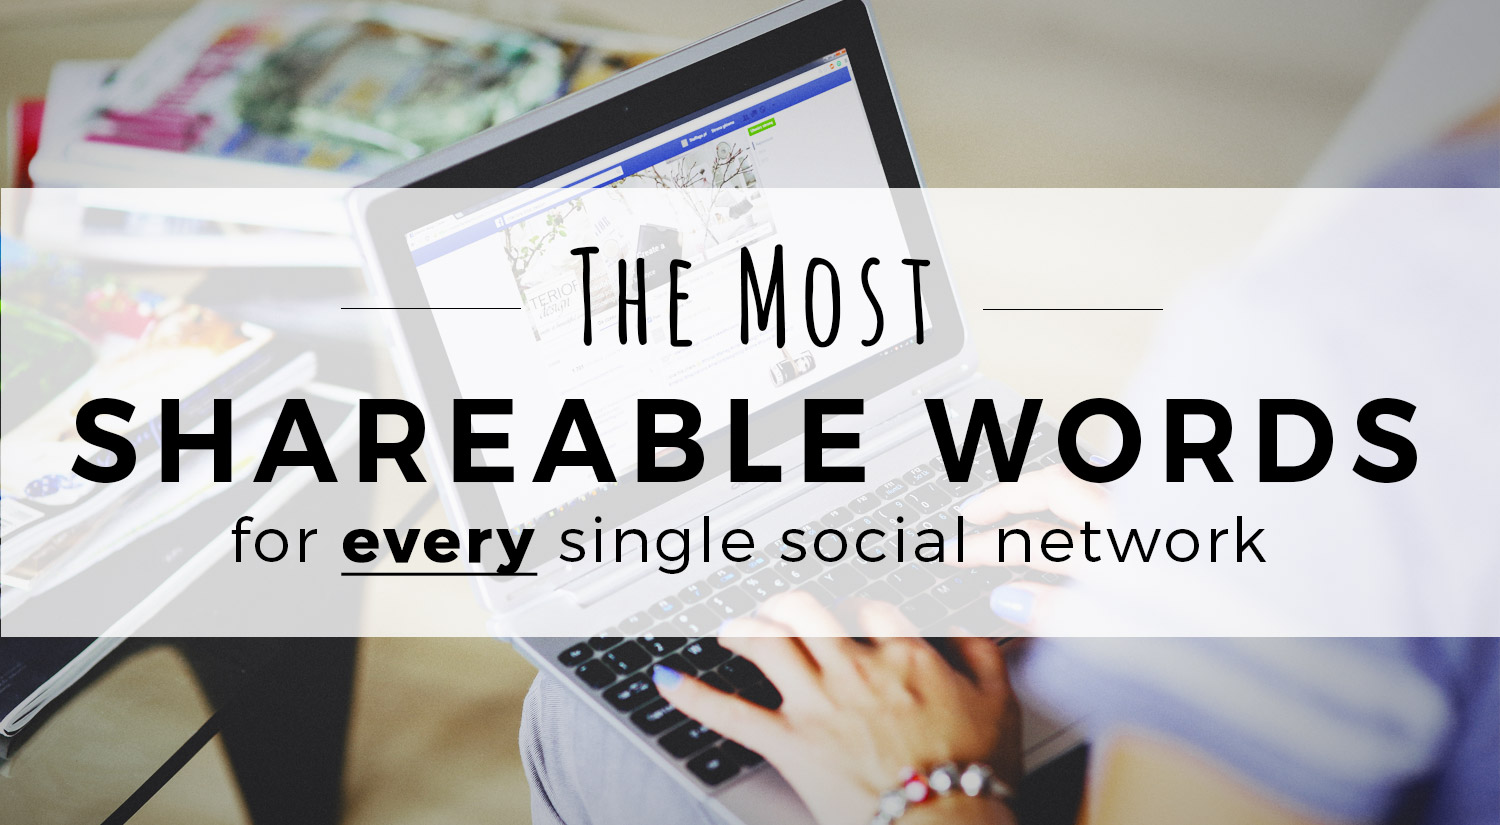 The Most Shareable Words for Every Single Social Network